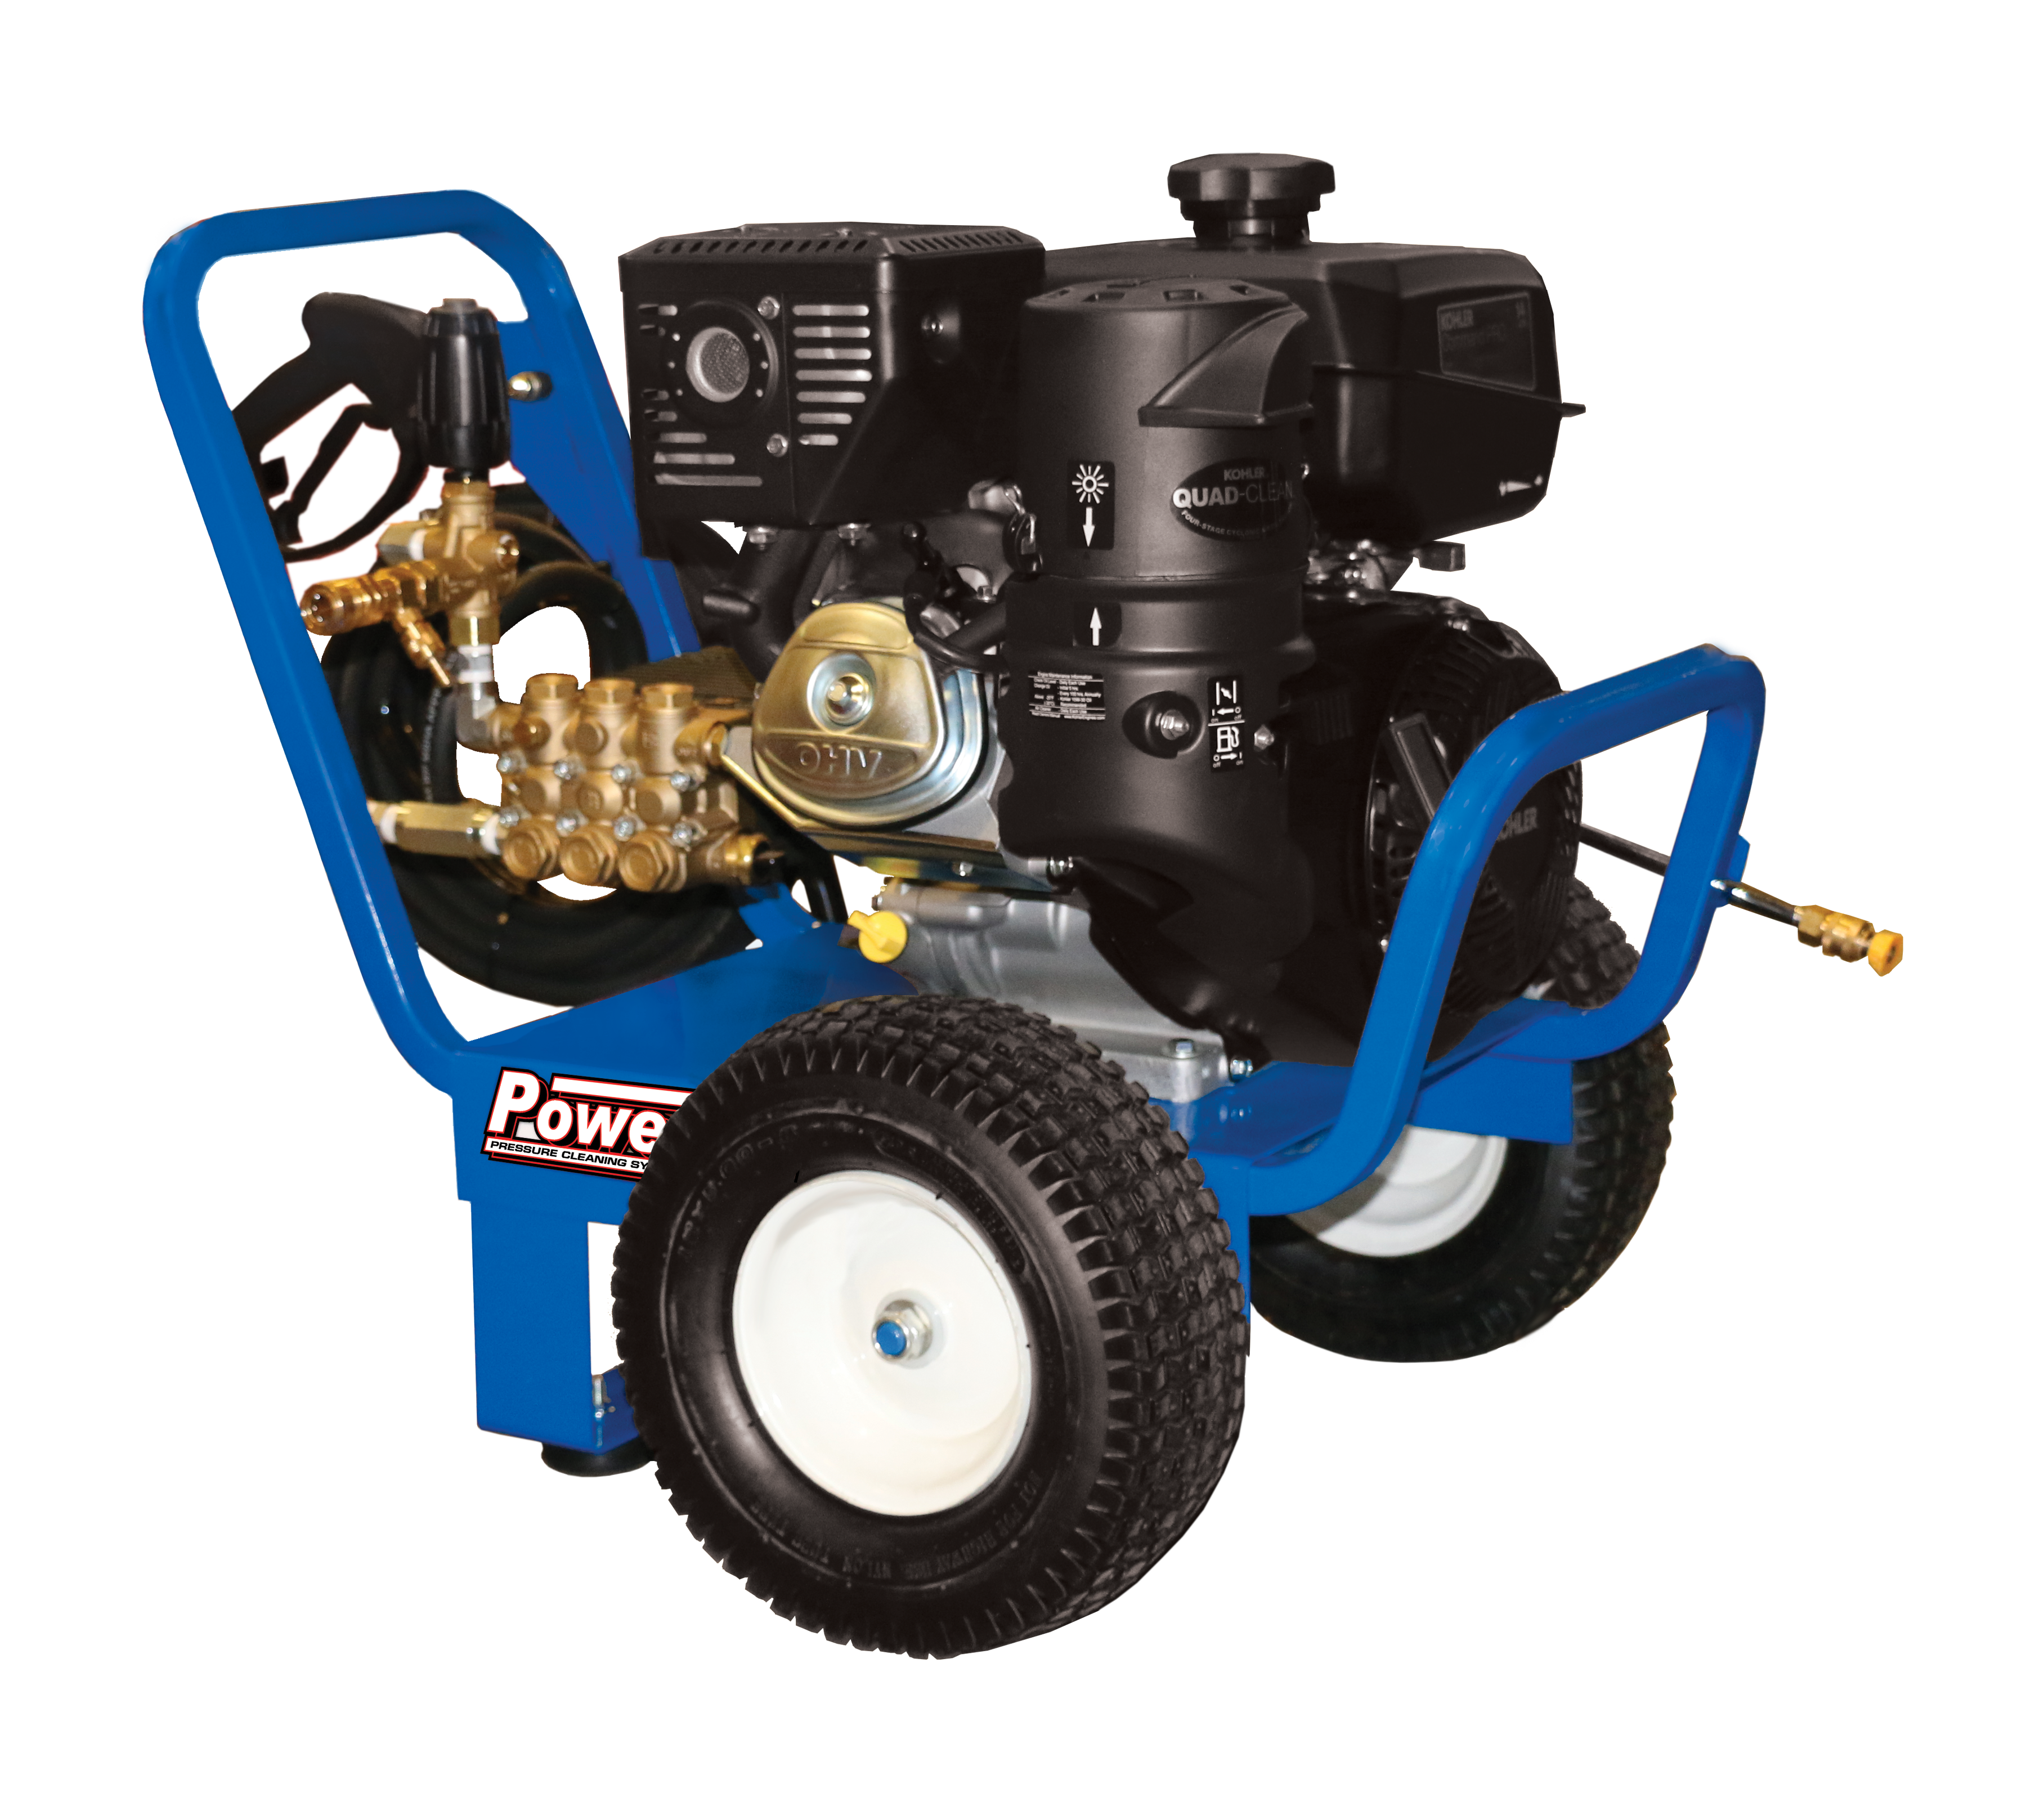 Car Trailers For Sale: PowerJet Pressure Washers